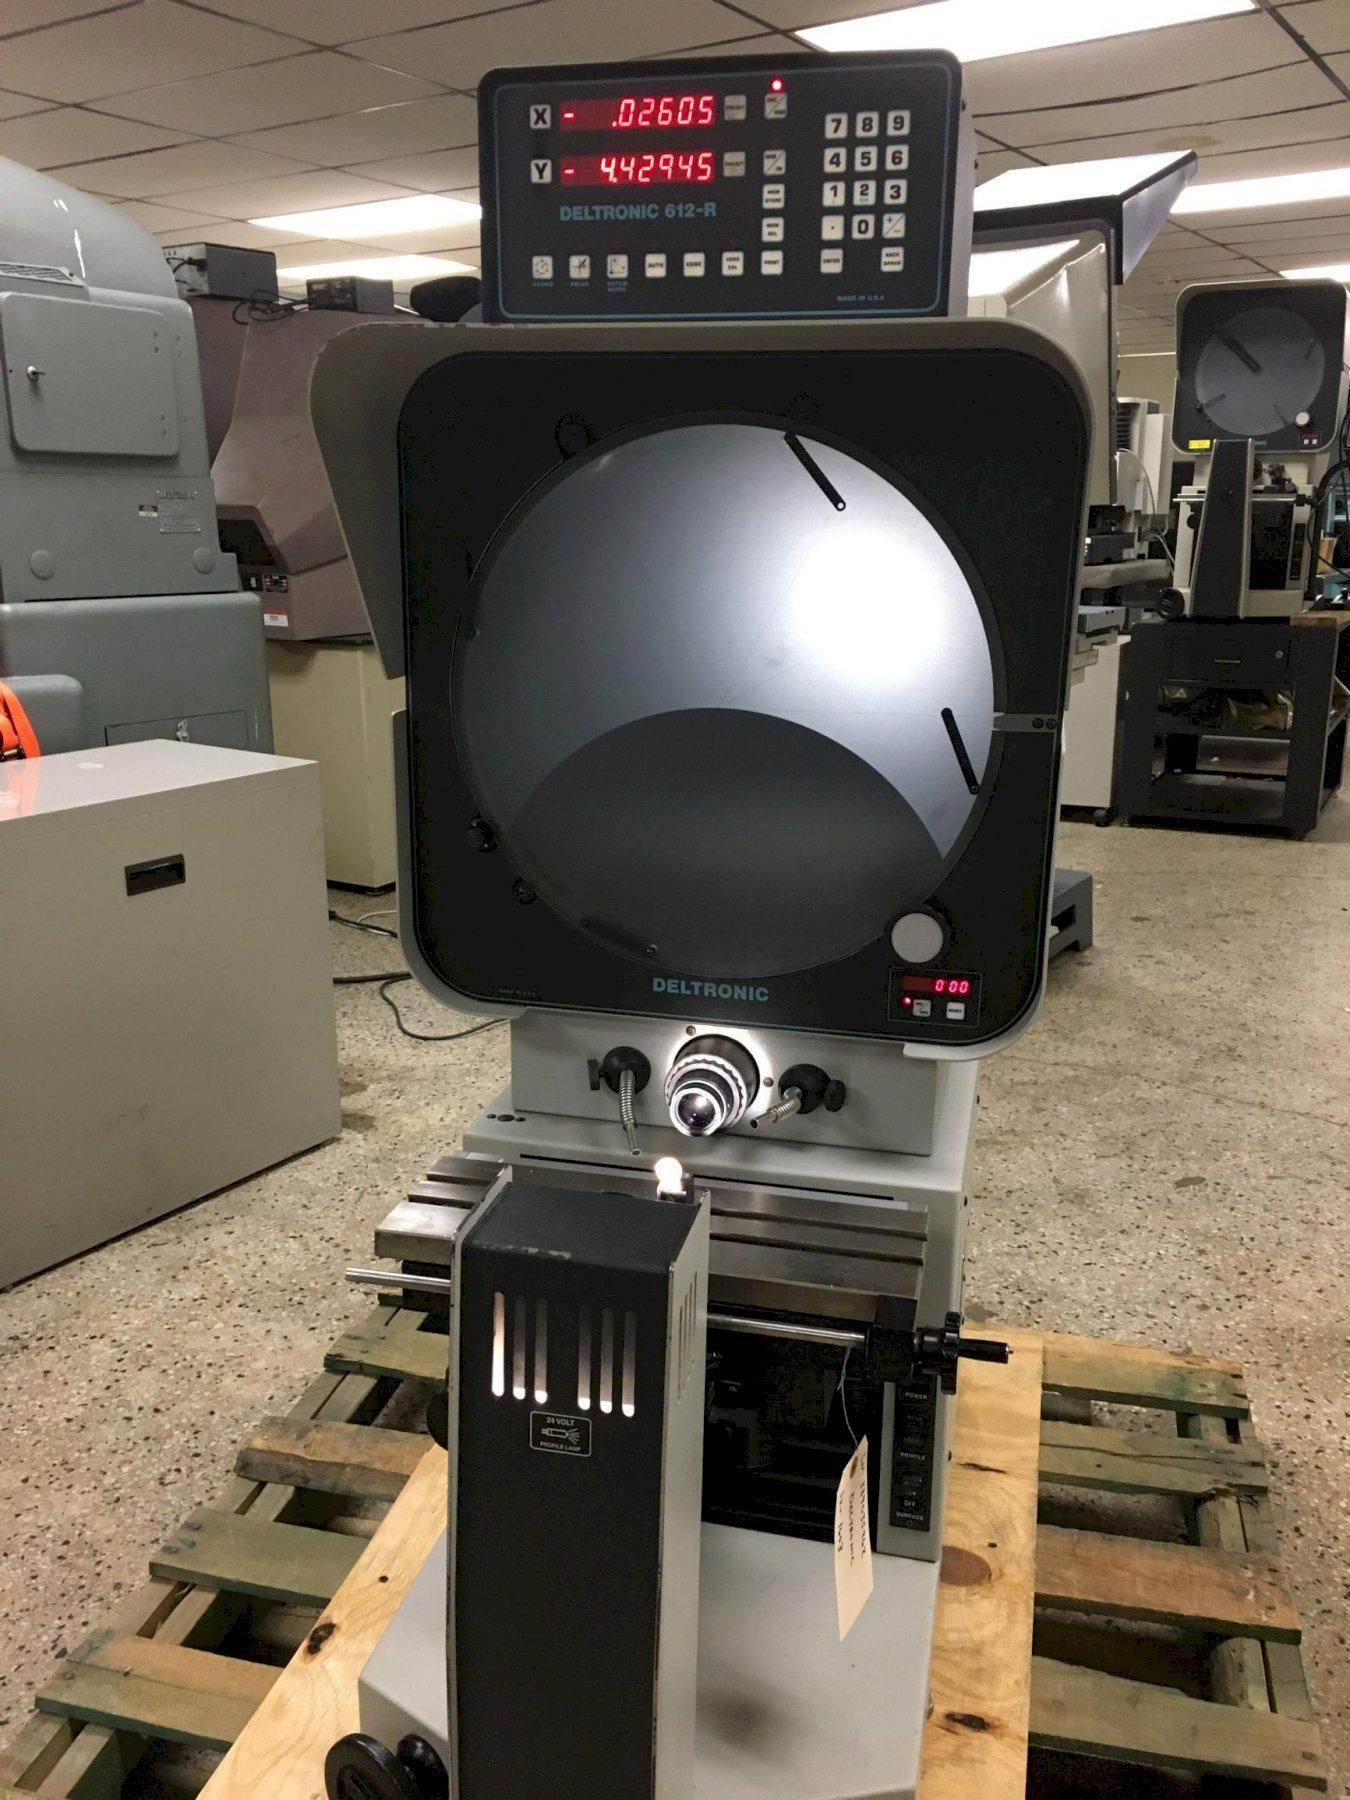 Deltronic Model DH216 Bench Top Optical Comparator, S/N 389085962.